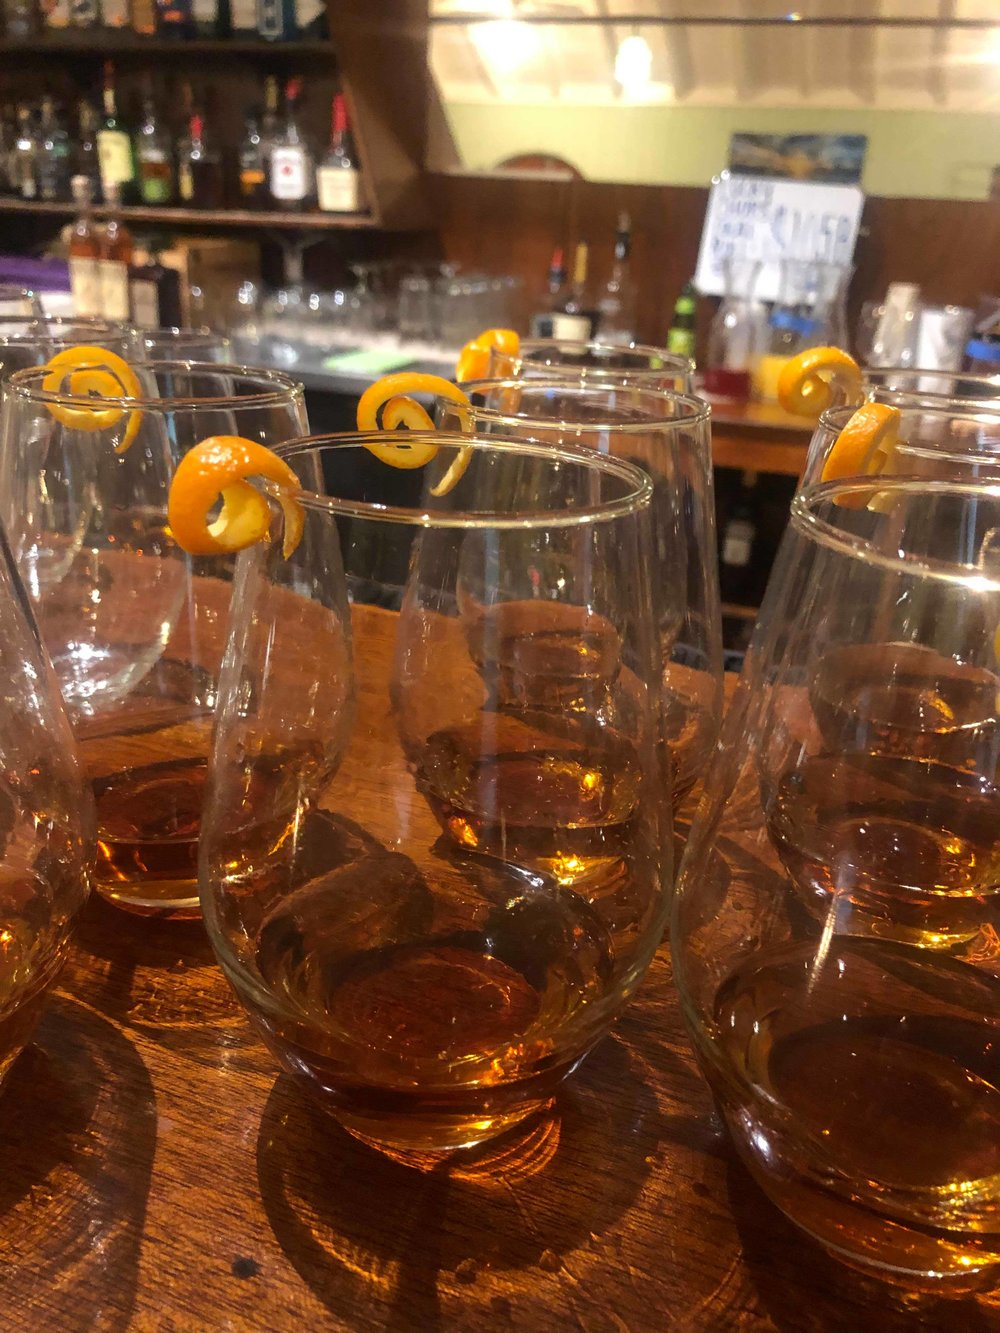 Drink pairing for course five: The Godfather